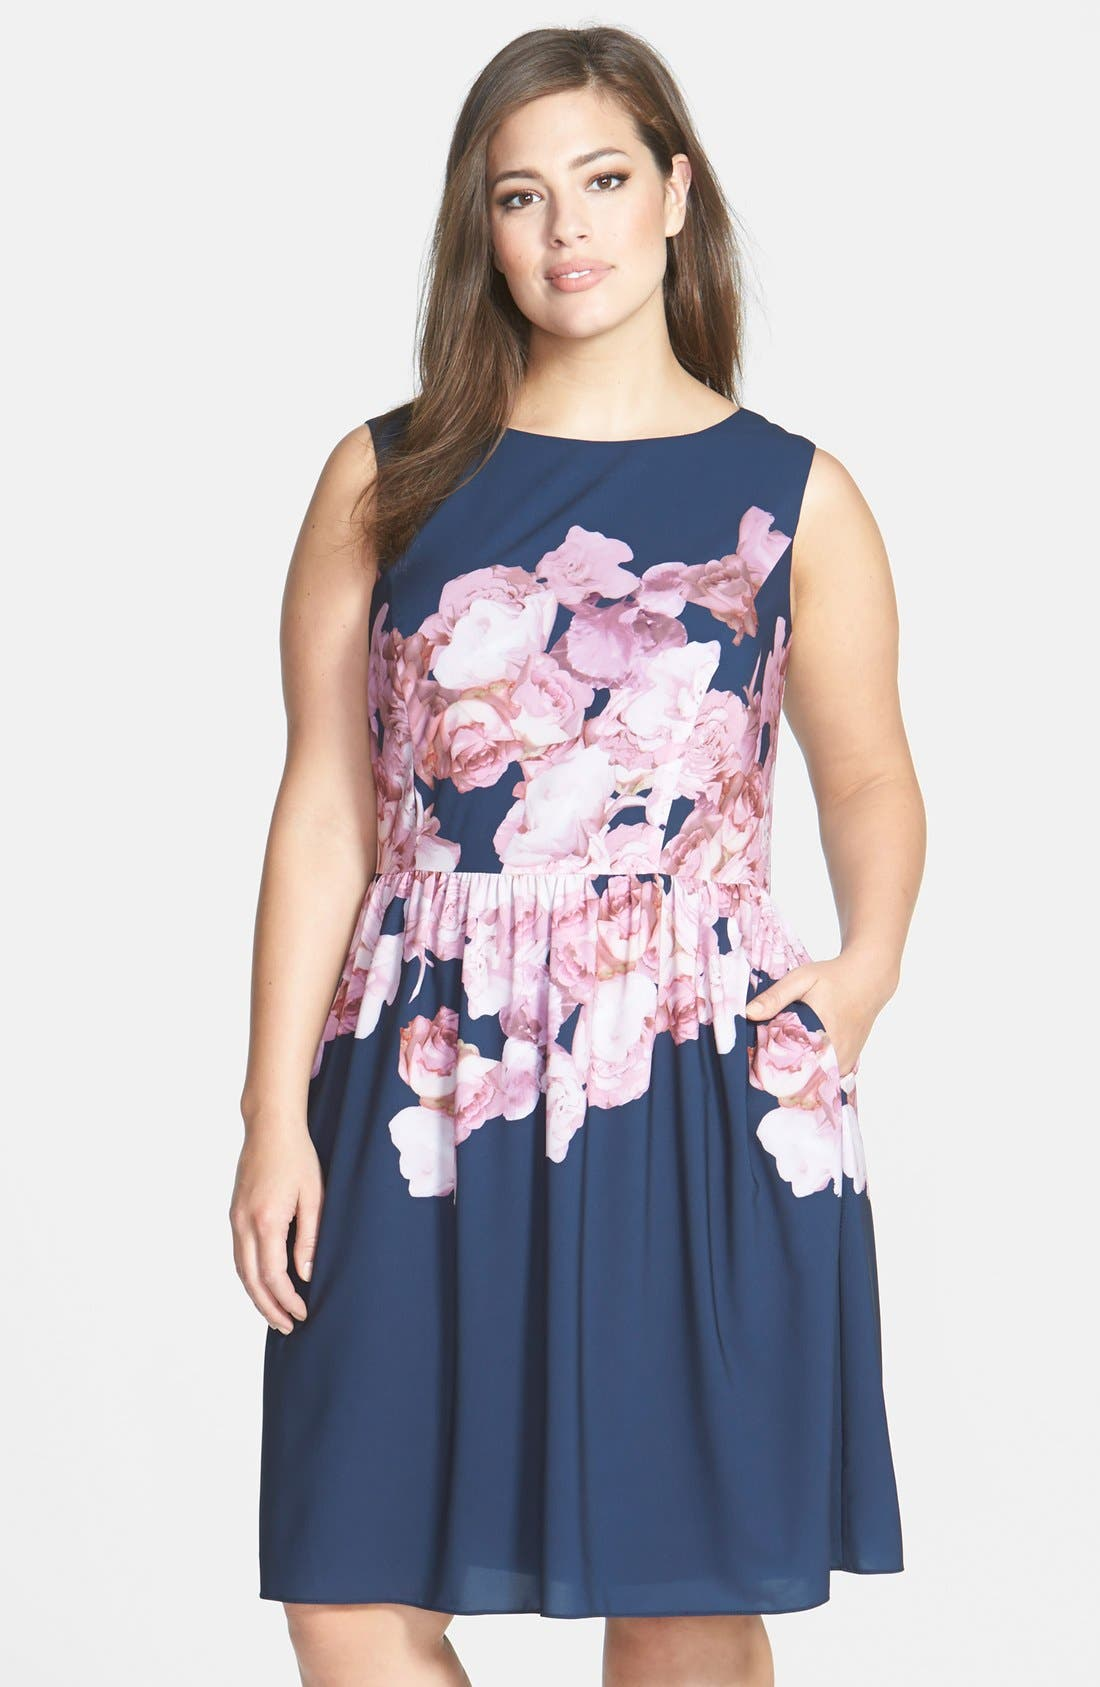 Alternate Image 1 Selected - Adrianna Papell Floral Print Chiffon Fit & Flare Dress (Plus Size)